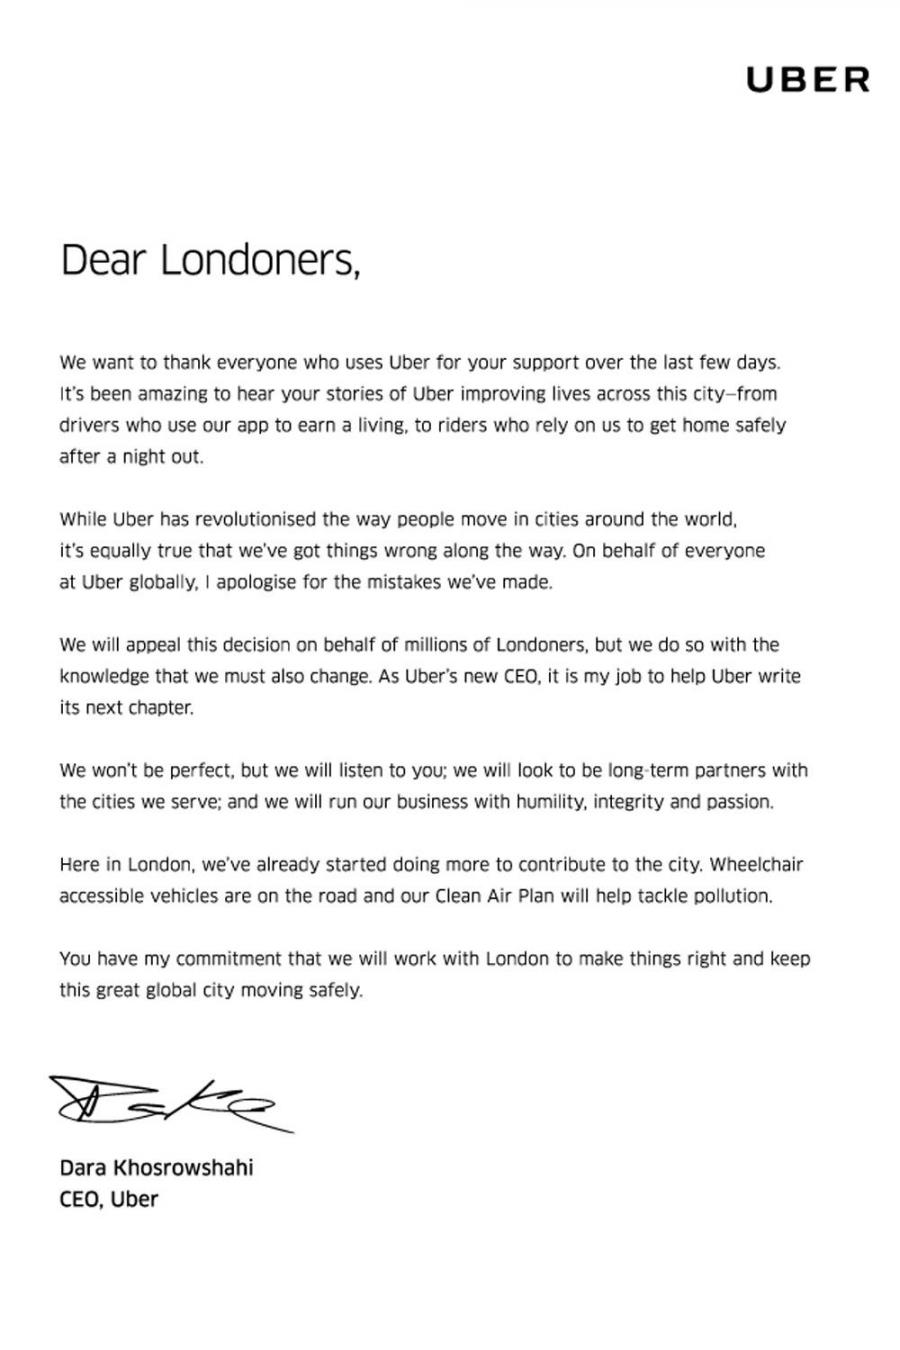 uber u2019s new ceo issues public apology to london for company